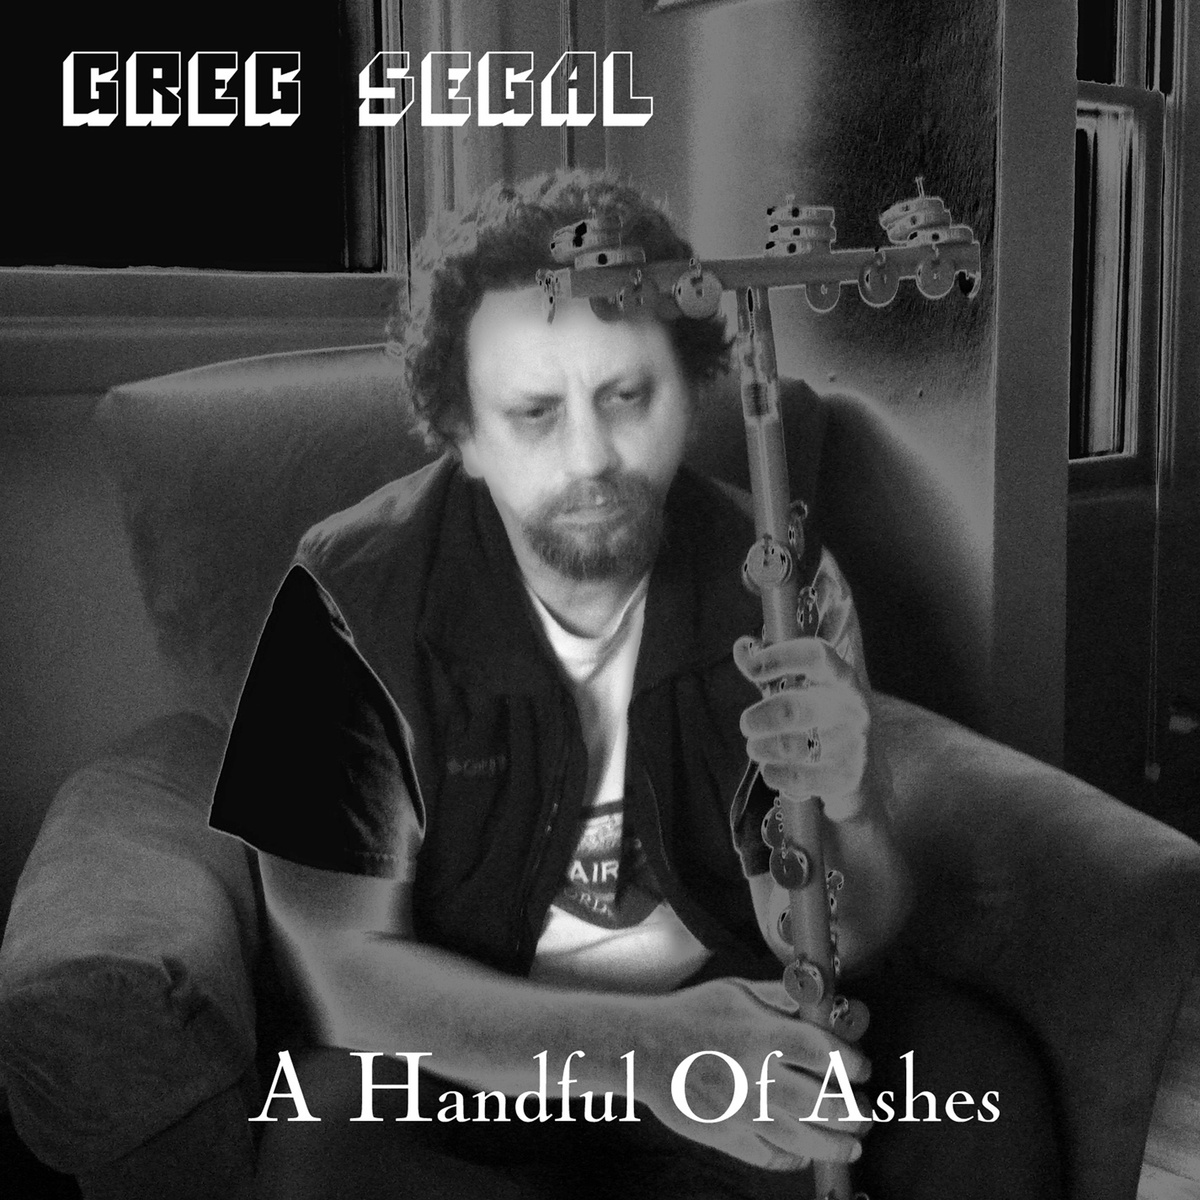 Greg Segal — A Handful of Ashes